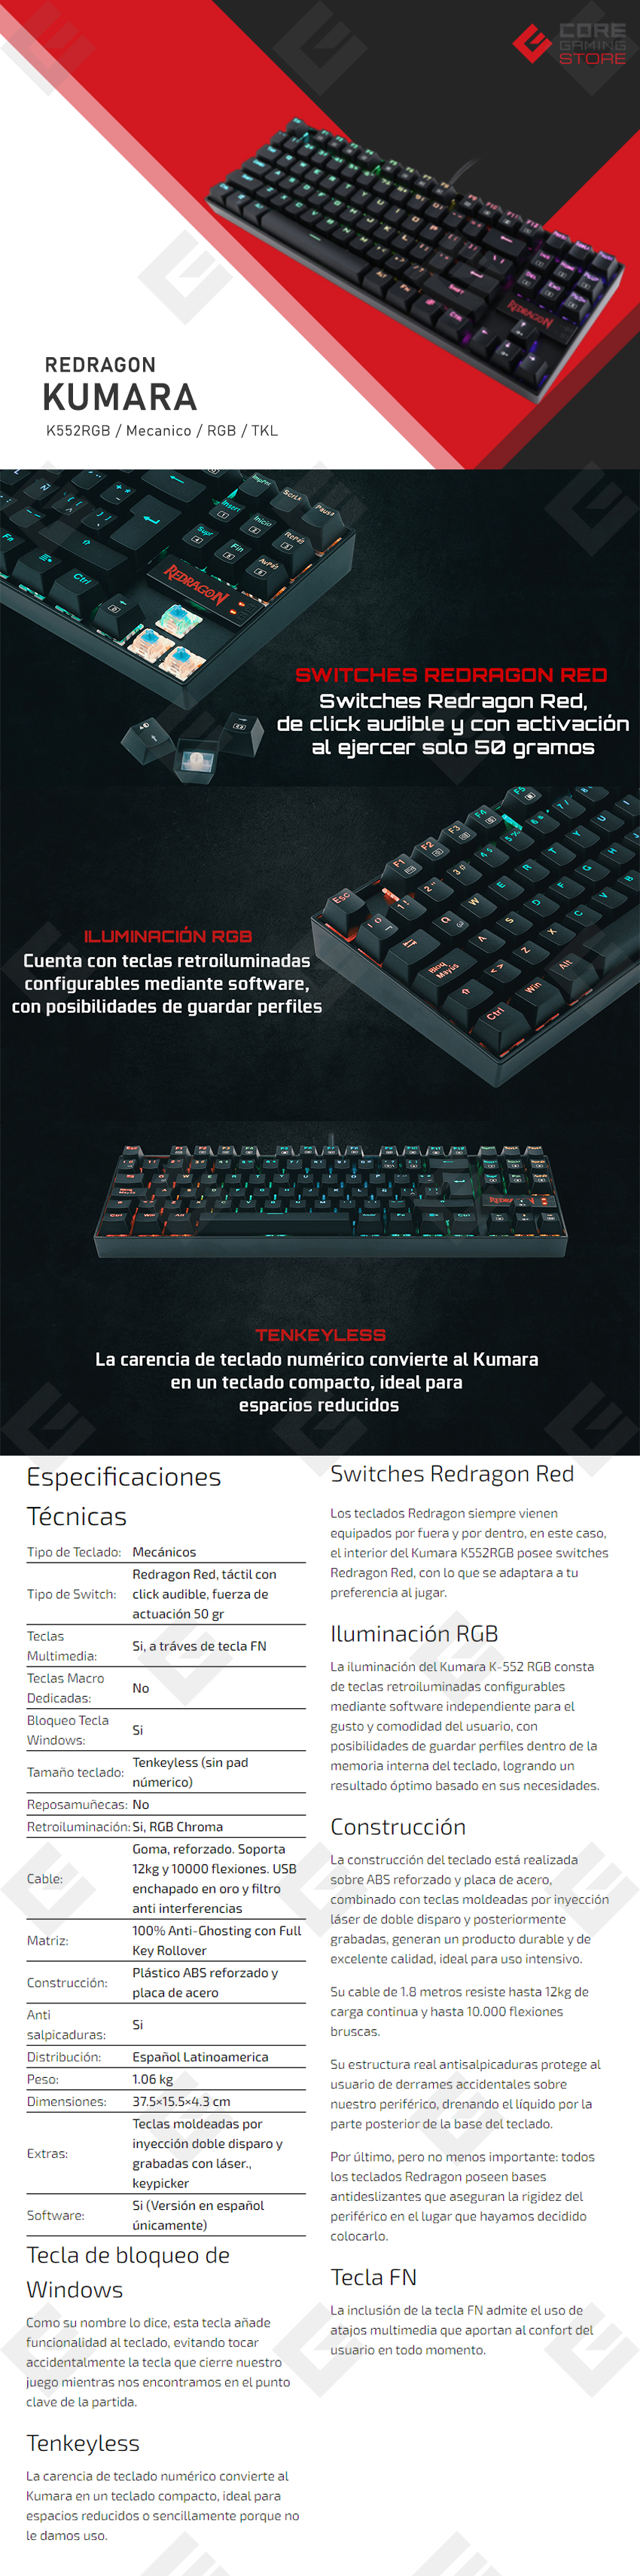 Teclado Mecanico Redragon Kumara Negro K552RGB, TKL, Switches Redragon Red opticos, Español